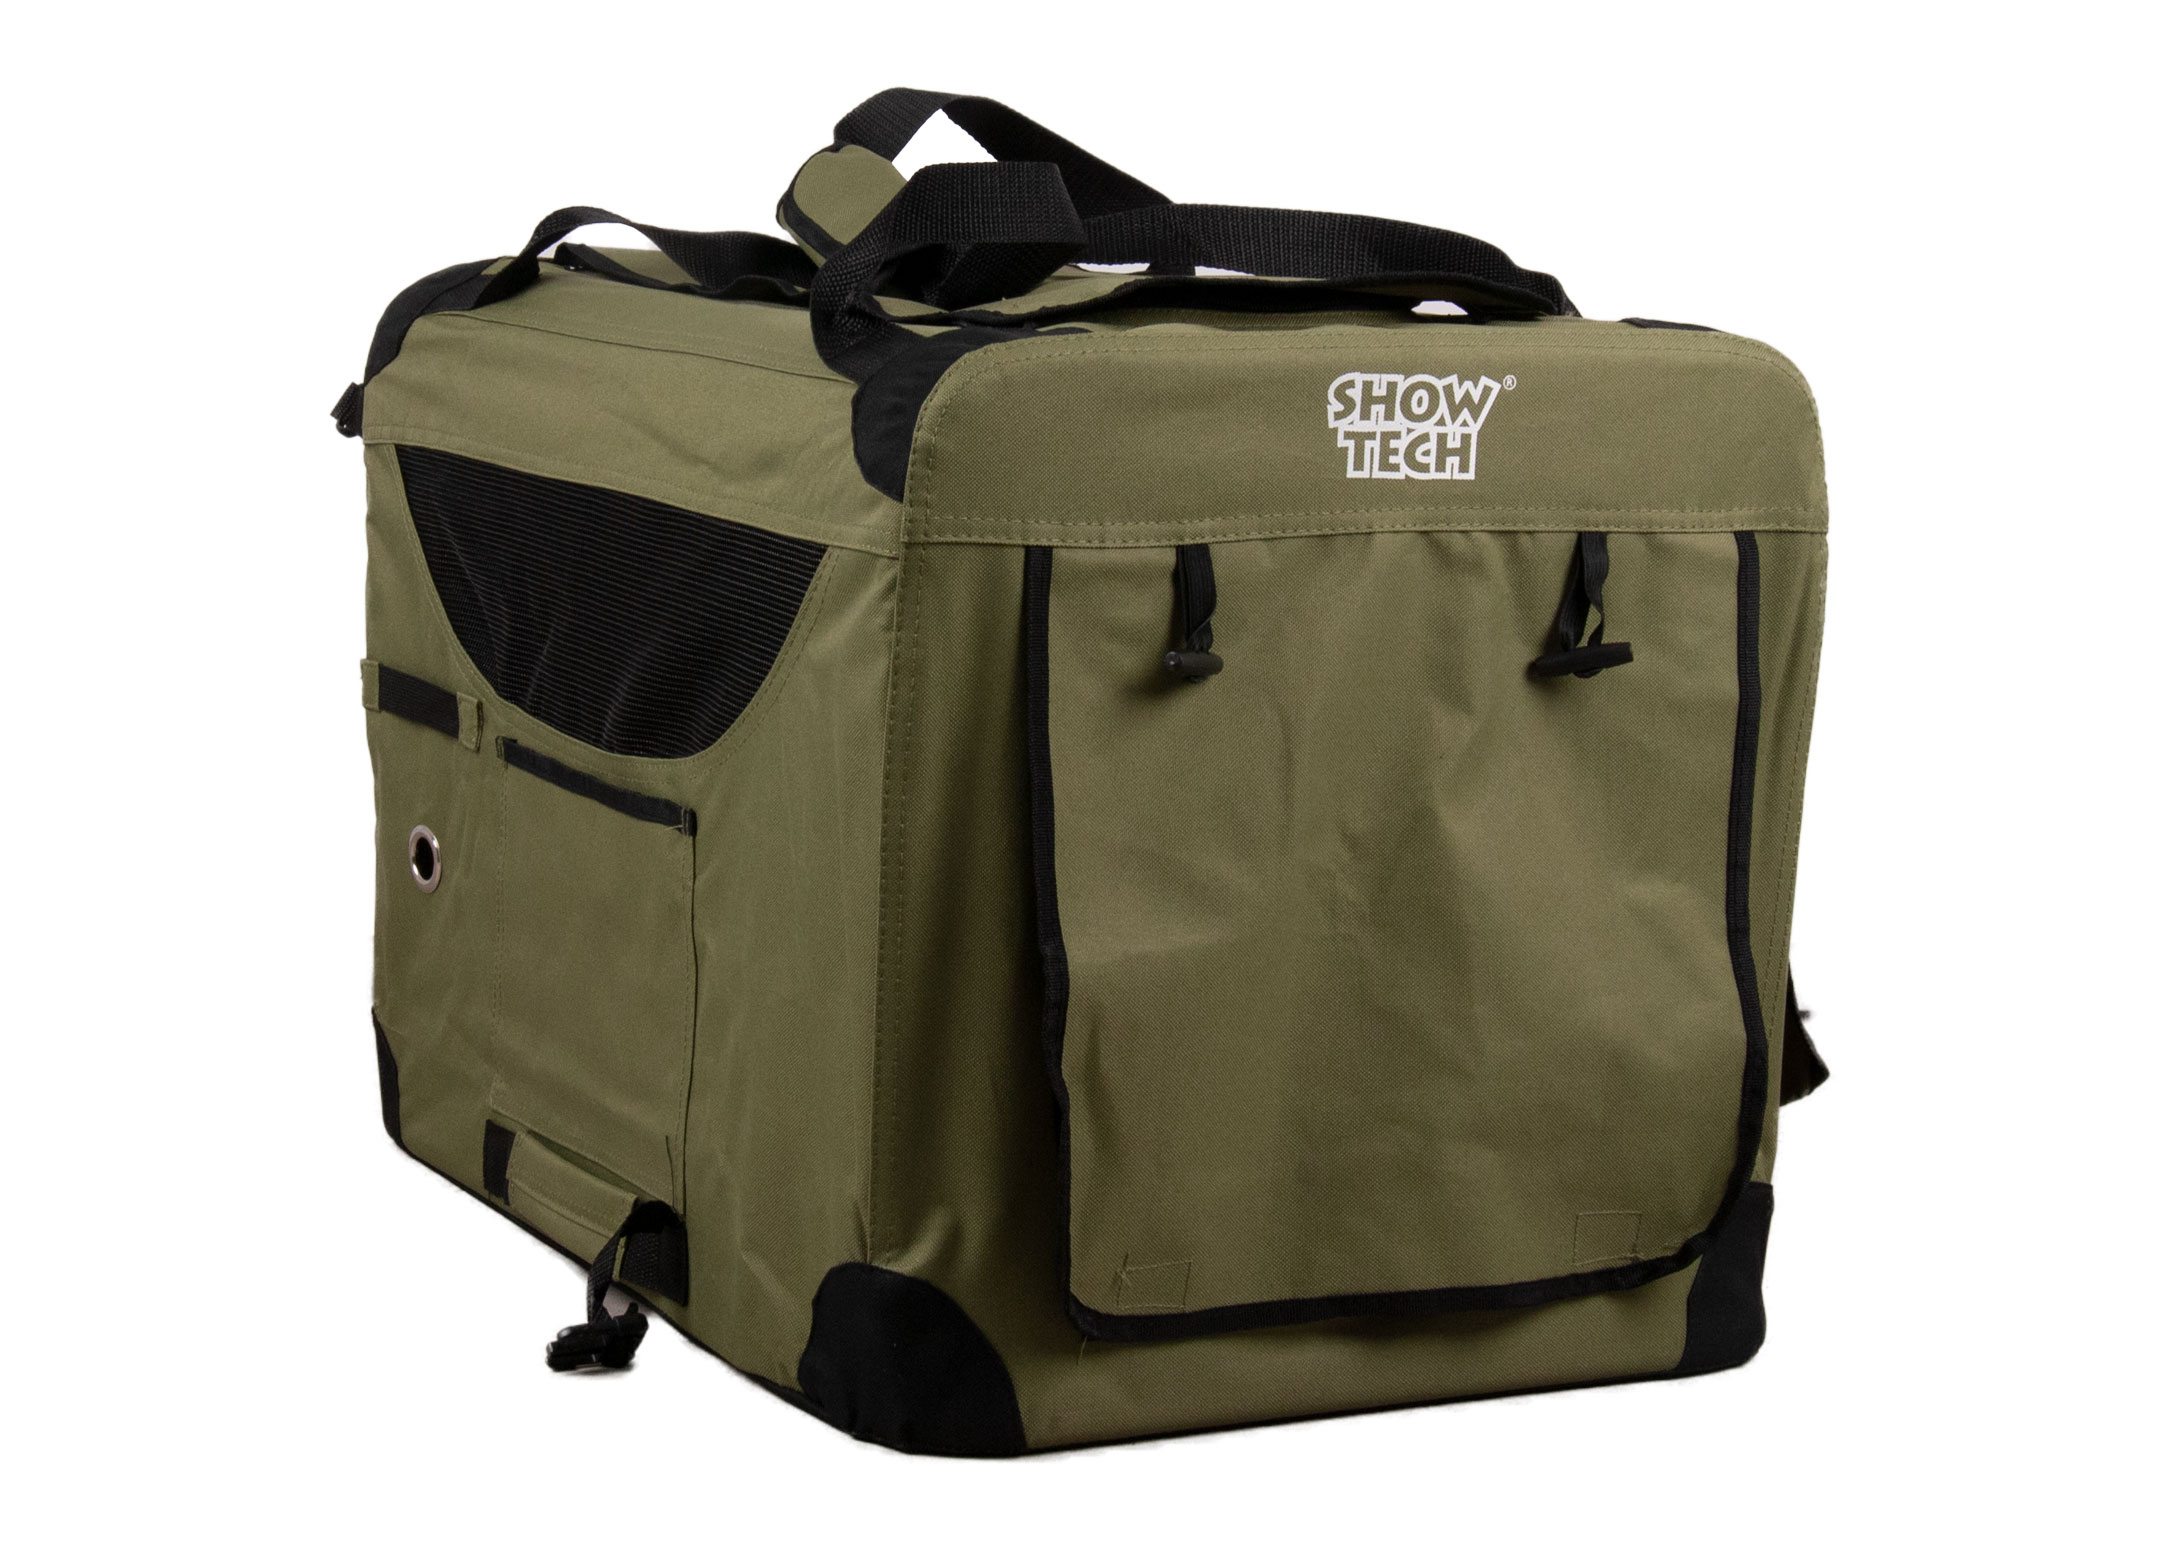 Show Tech Easy Crate Khaki x Black Traveling Crate